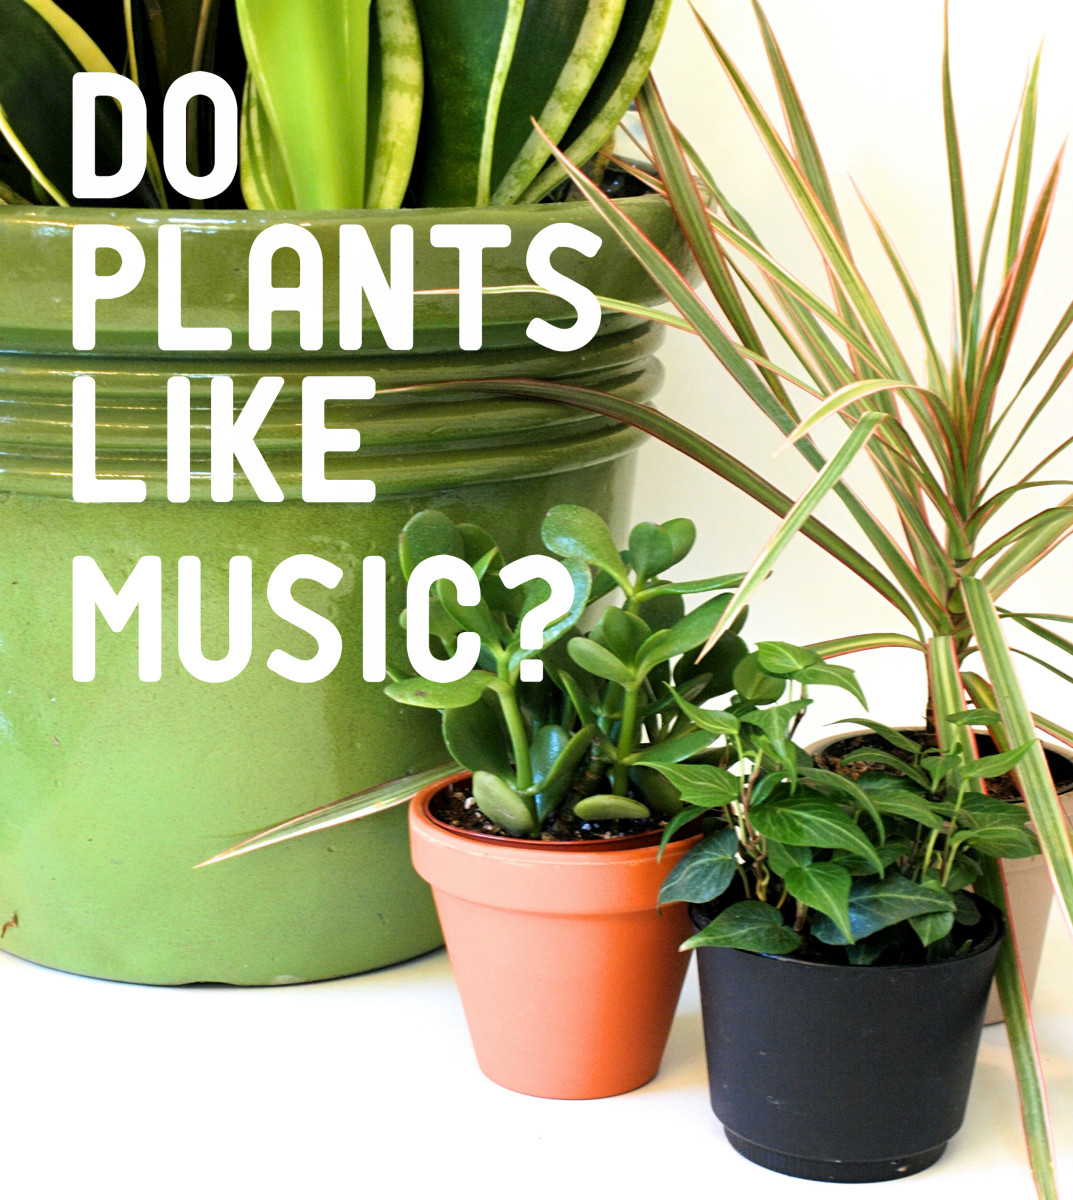 Does music really help plants grow? Learn about some interesting studies involving music and plants!